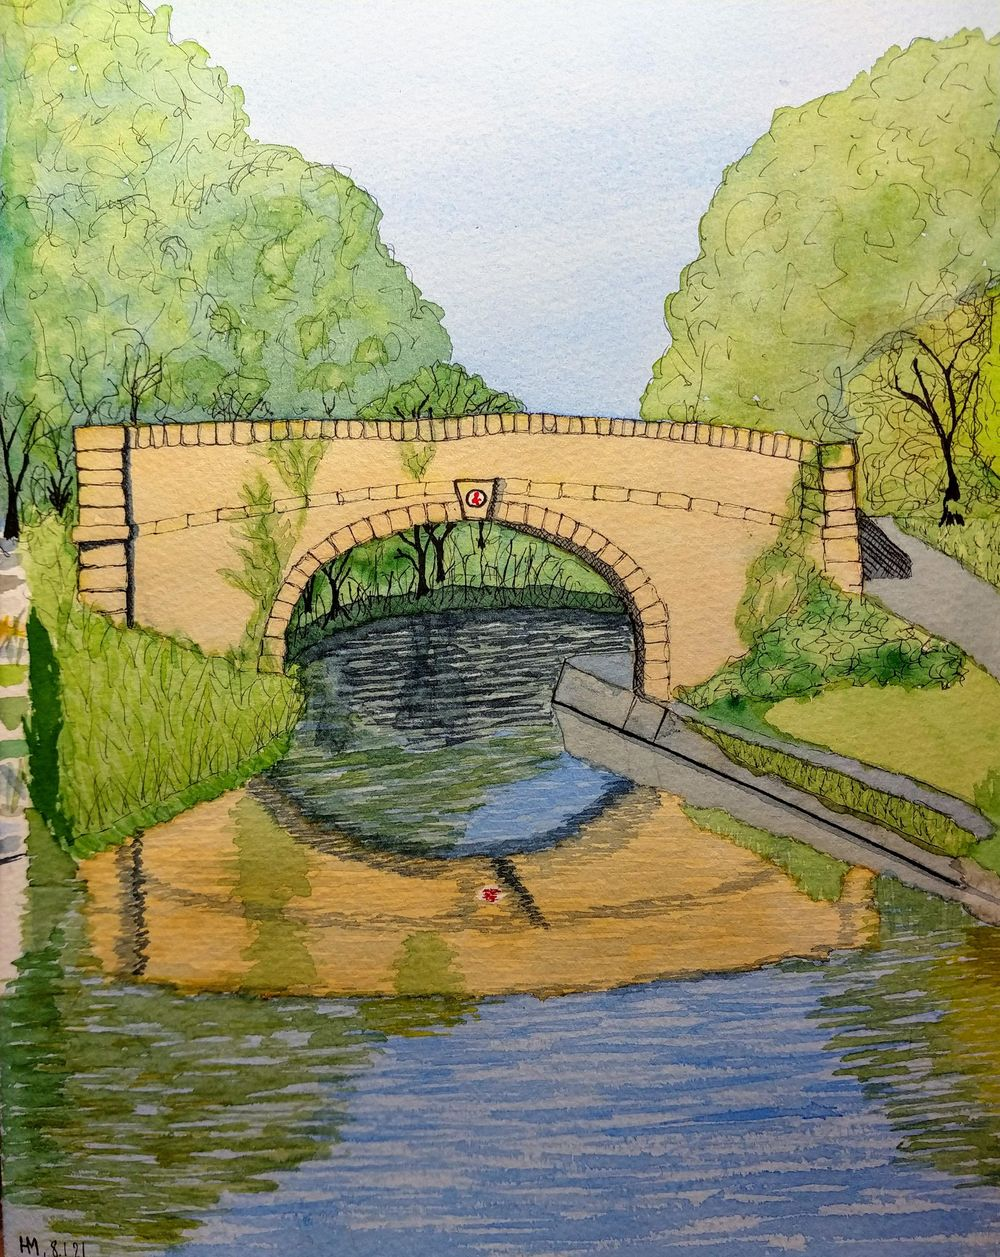 Painting Water & Reflexions - image 6 - student project